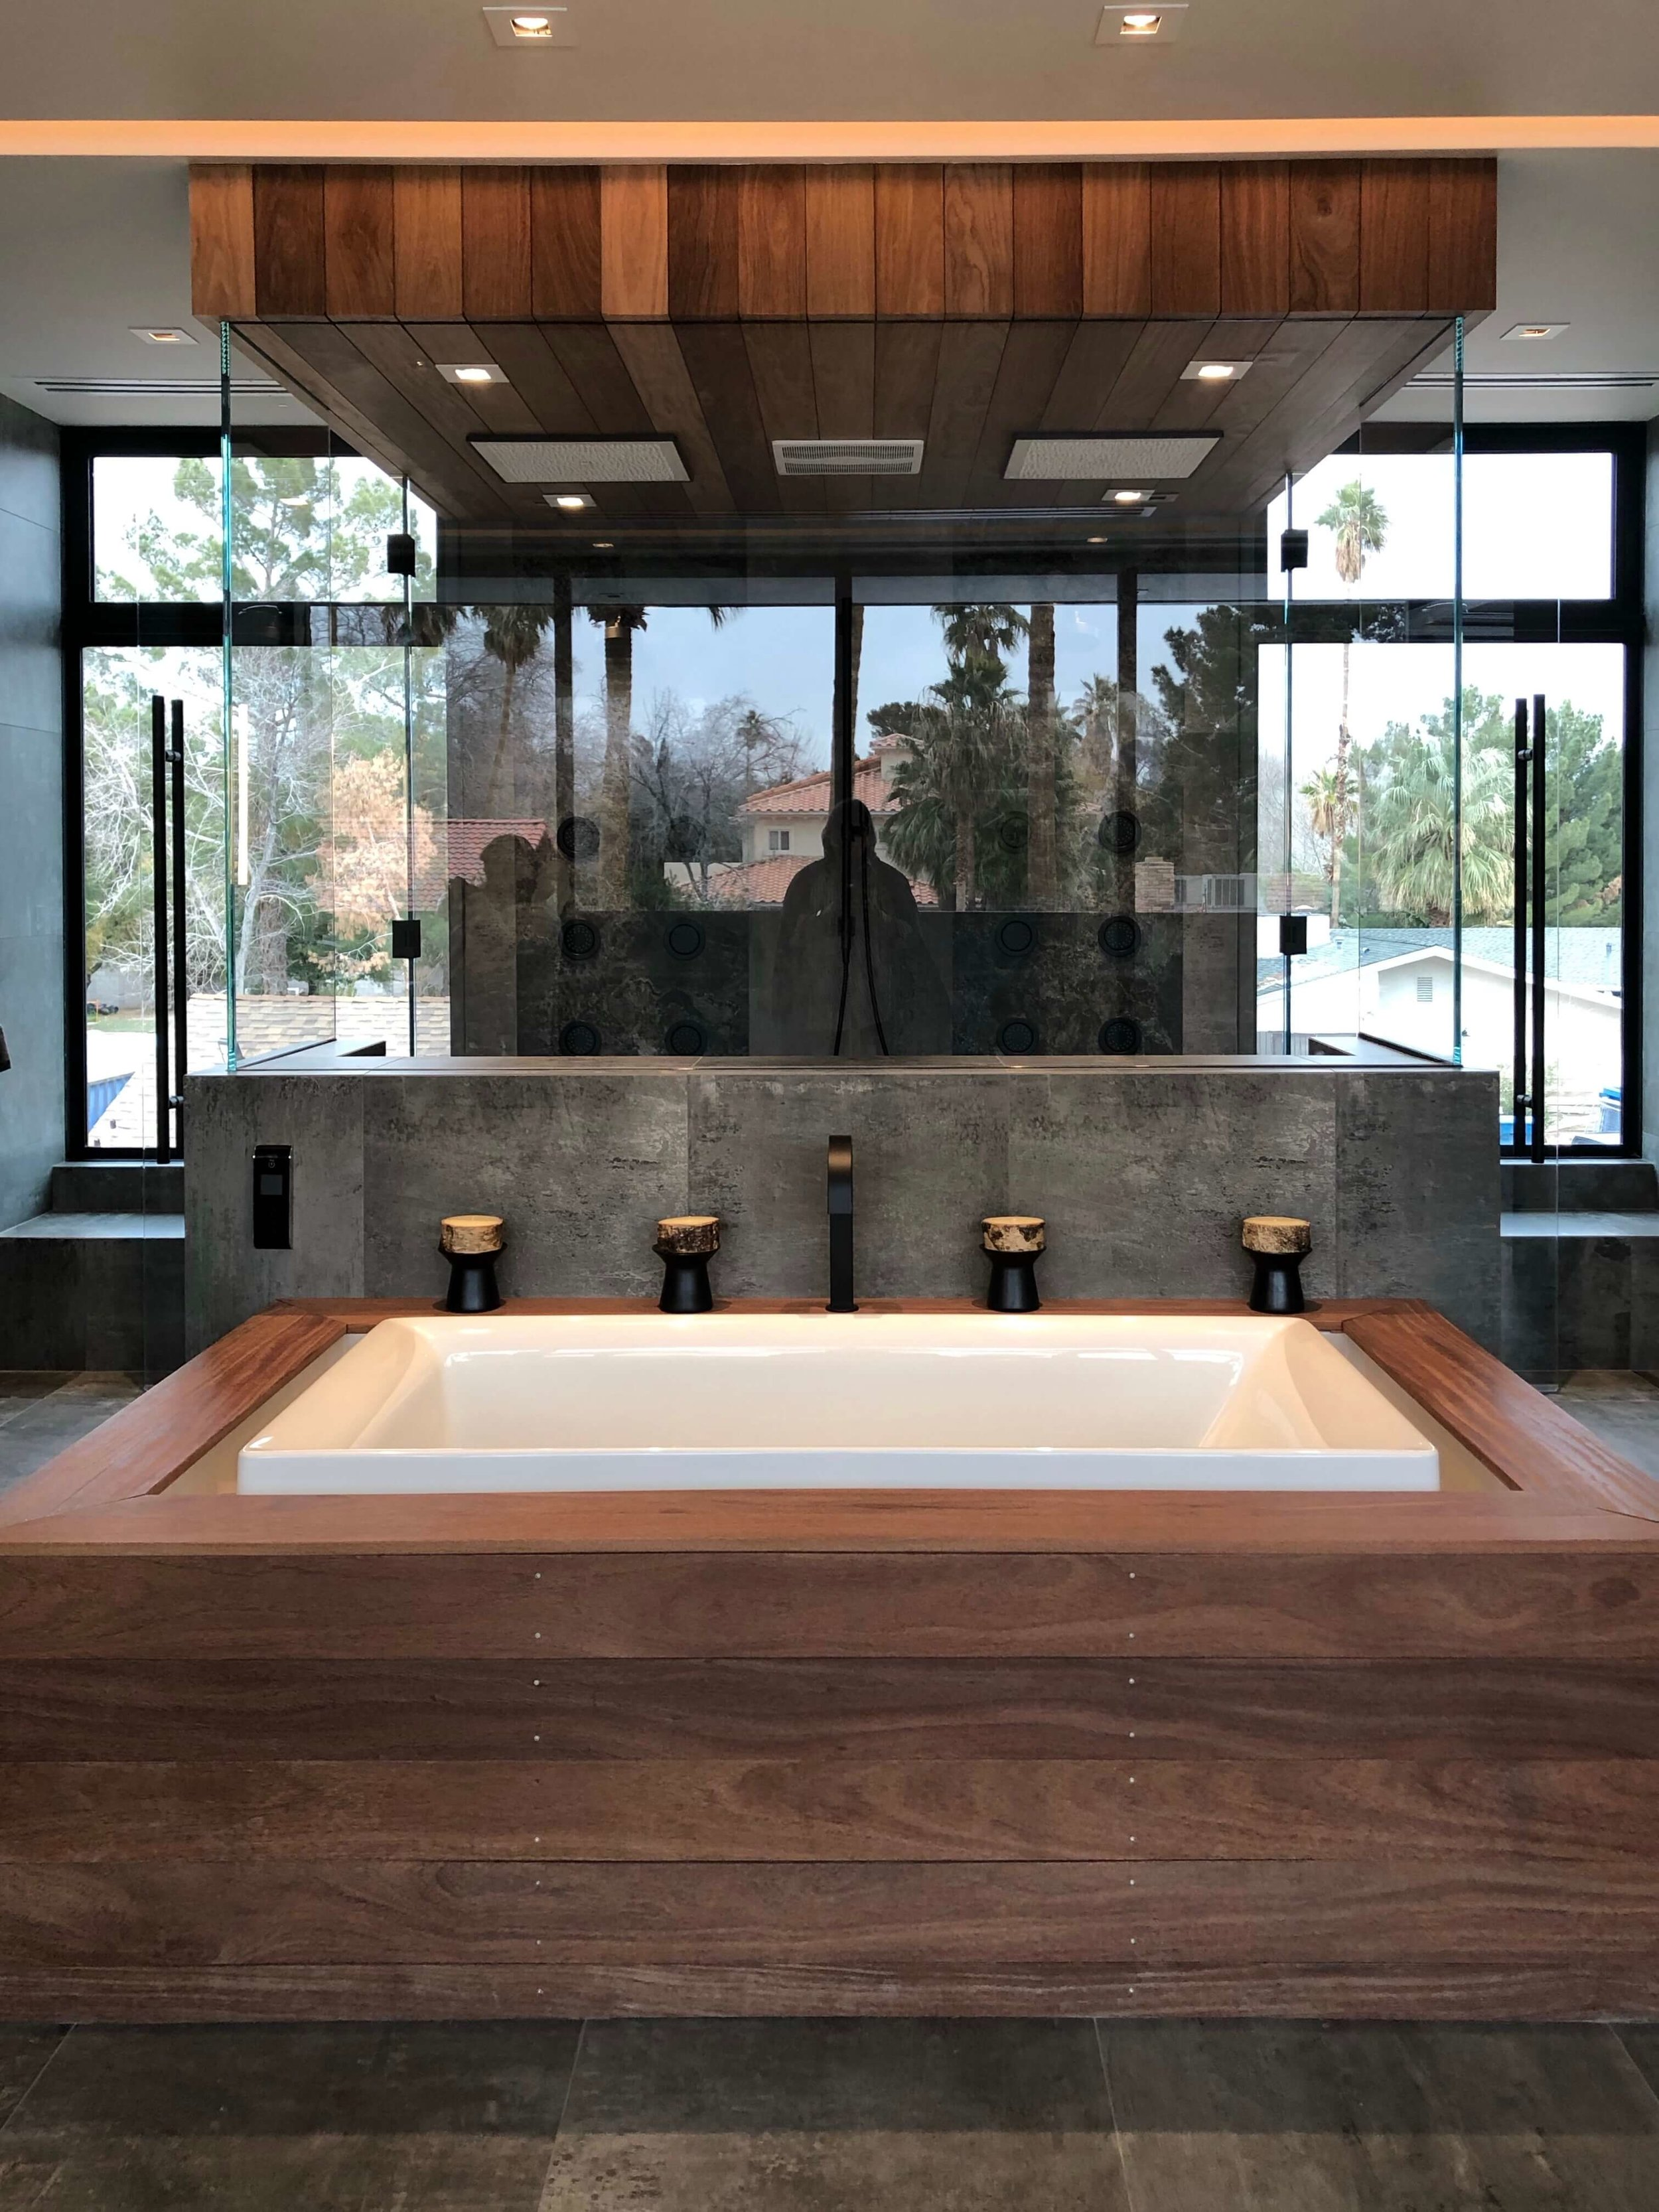 Master bath infinity tub and steam shower in The New American Remodel 2019. #masterbathroom #hometour #contemporaryhome